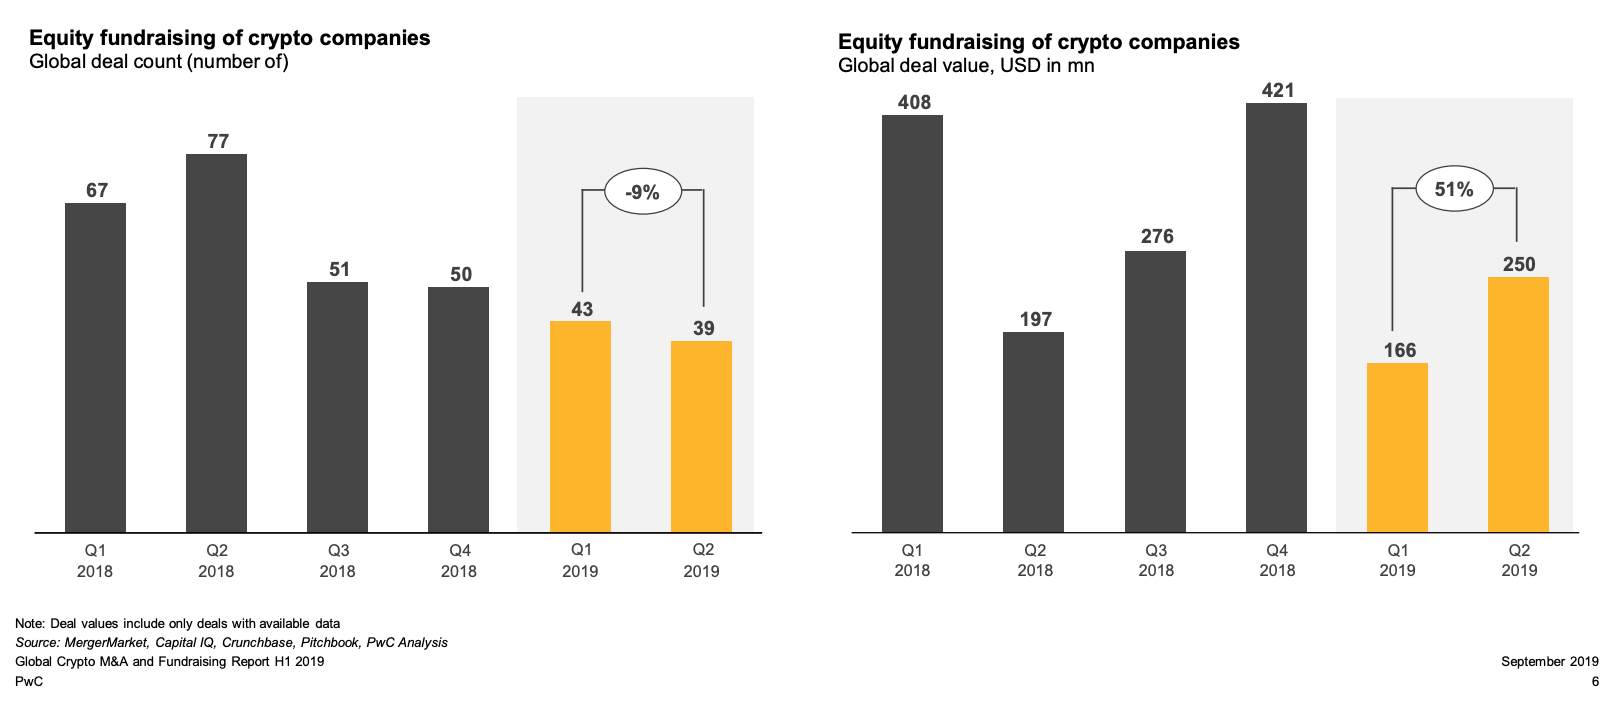 Equity fundraising of crypto companies, PwC, September 2019